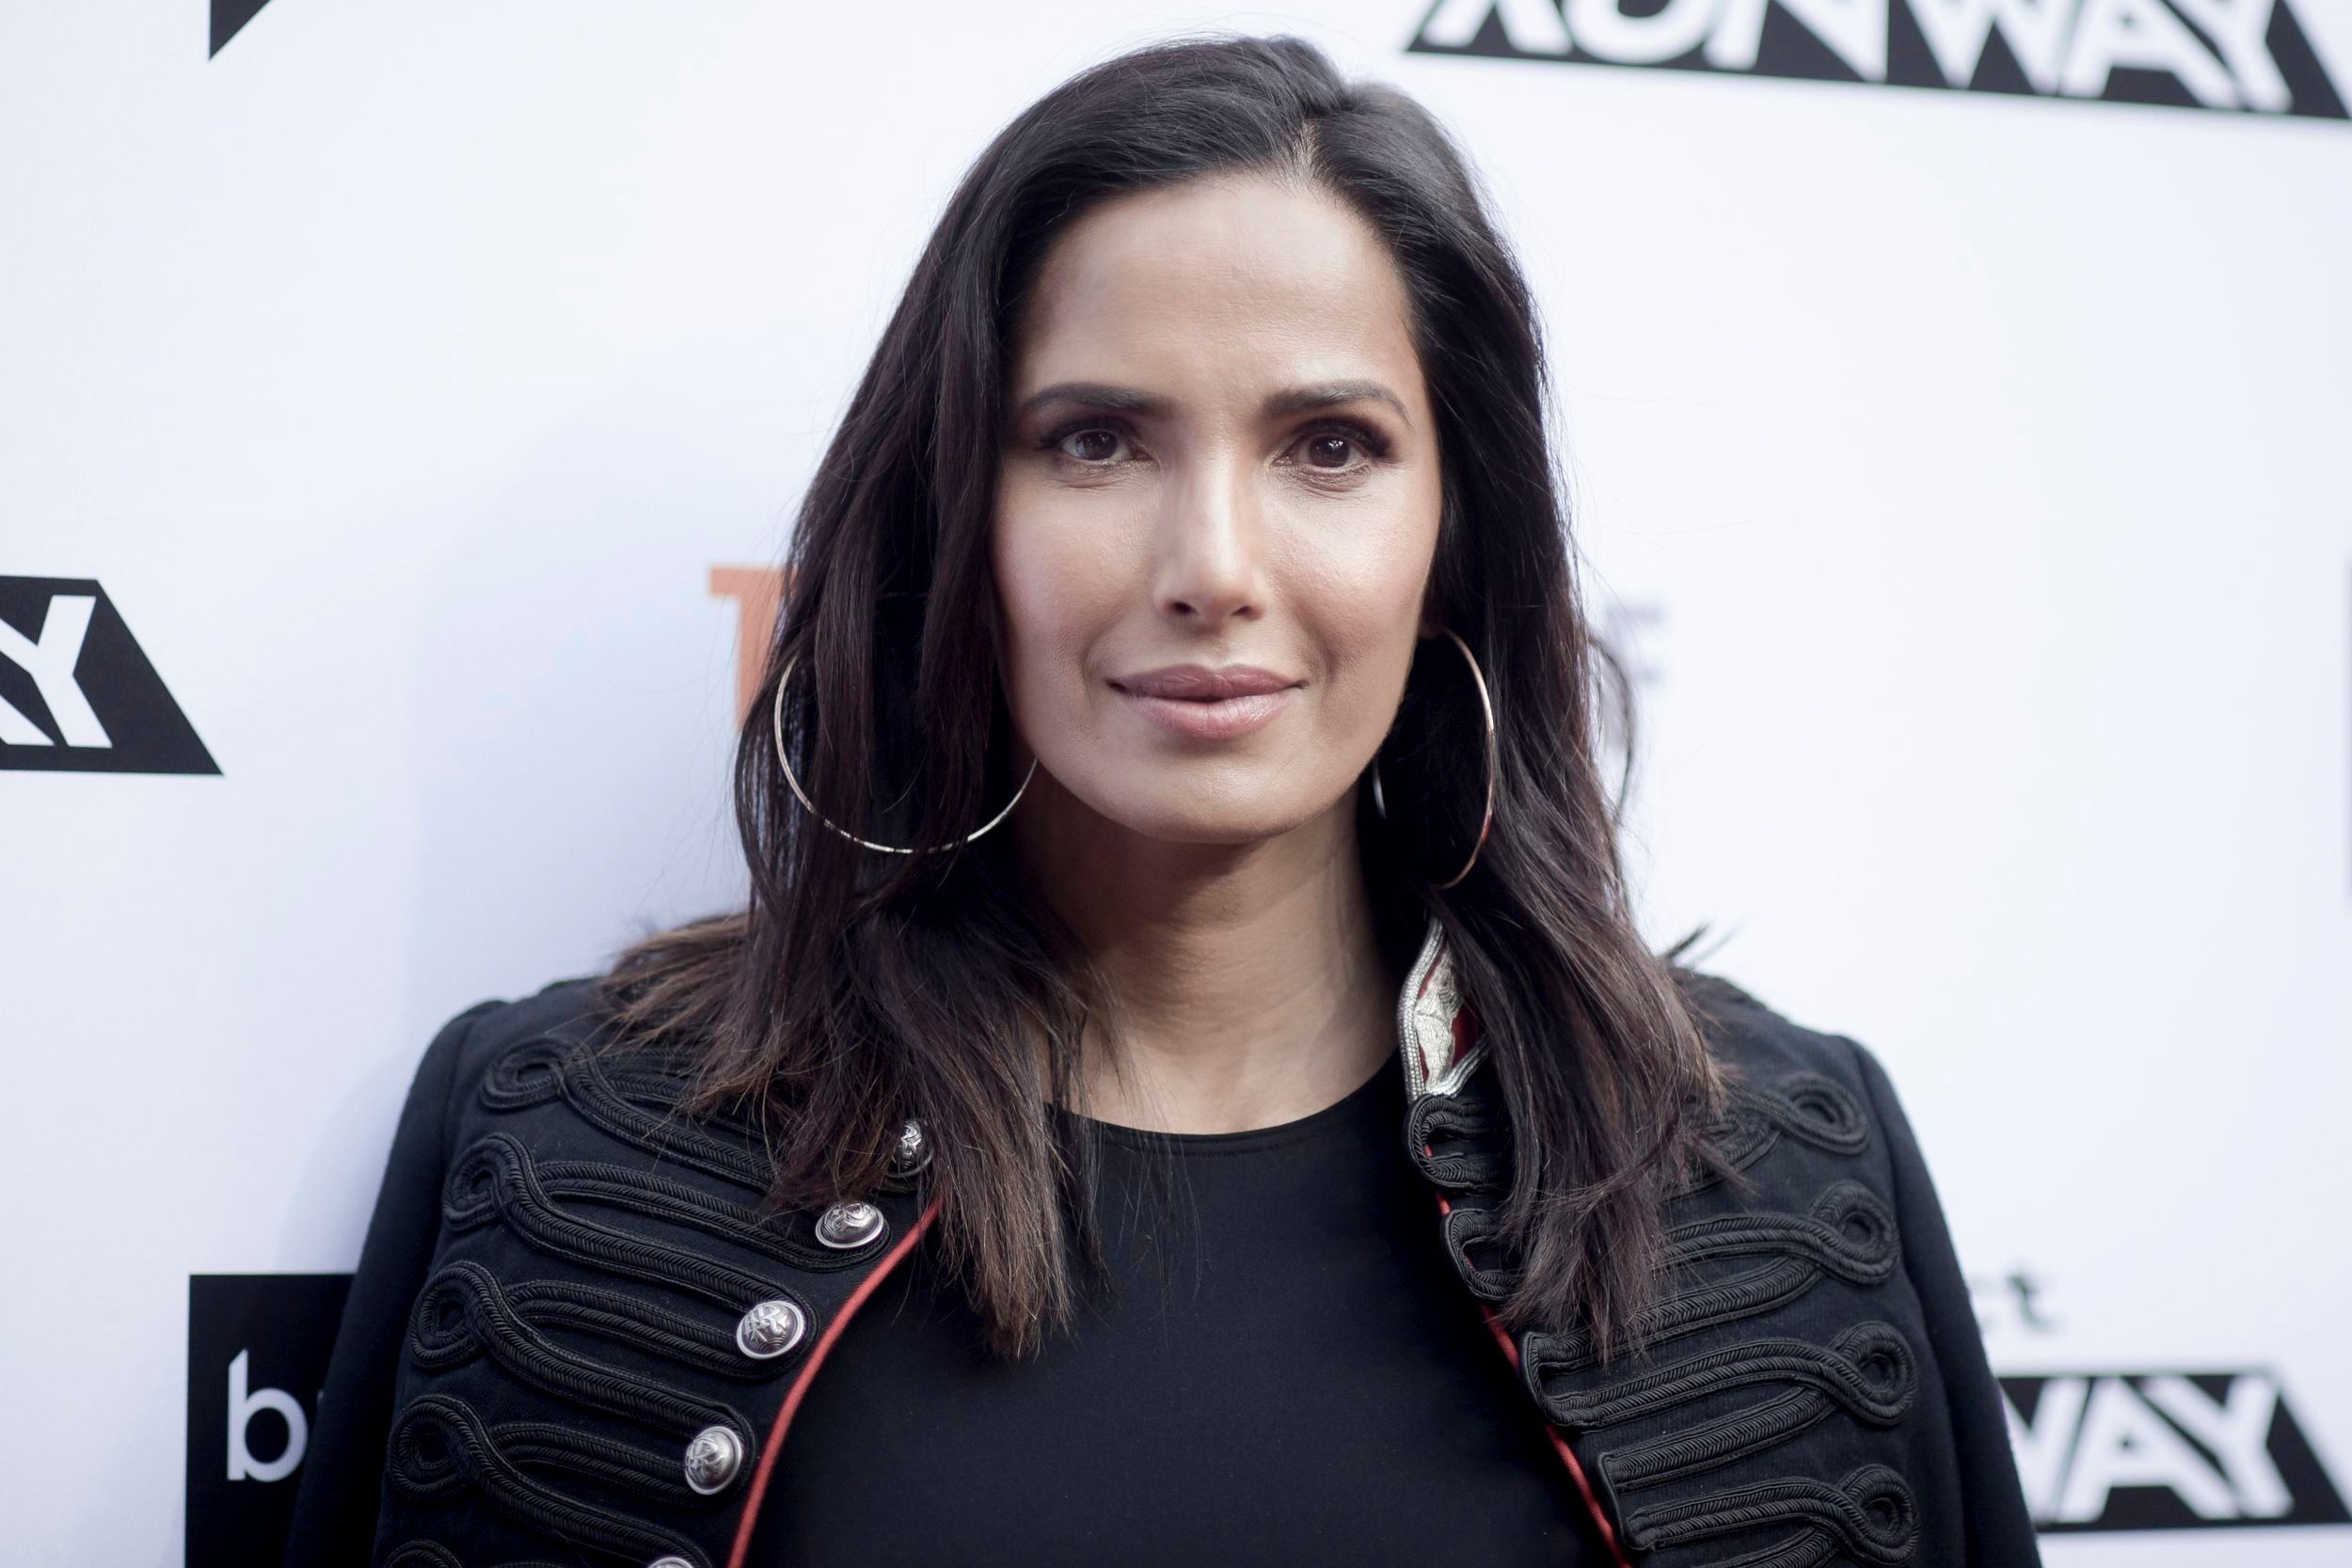 'Top Chef's Padma Lakshmi To Topline New Culinary Series For Hulu – TCA